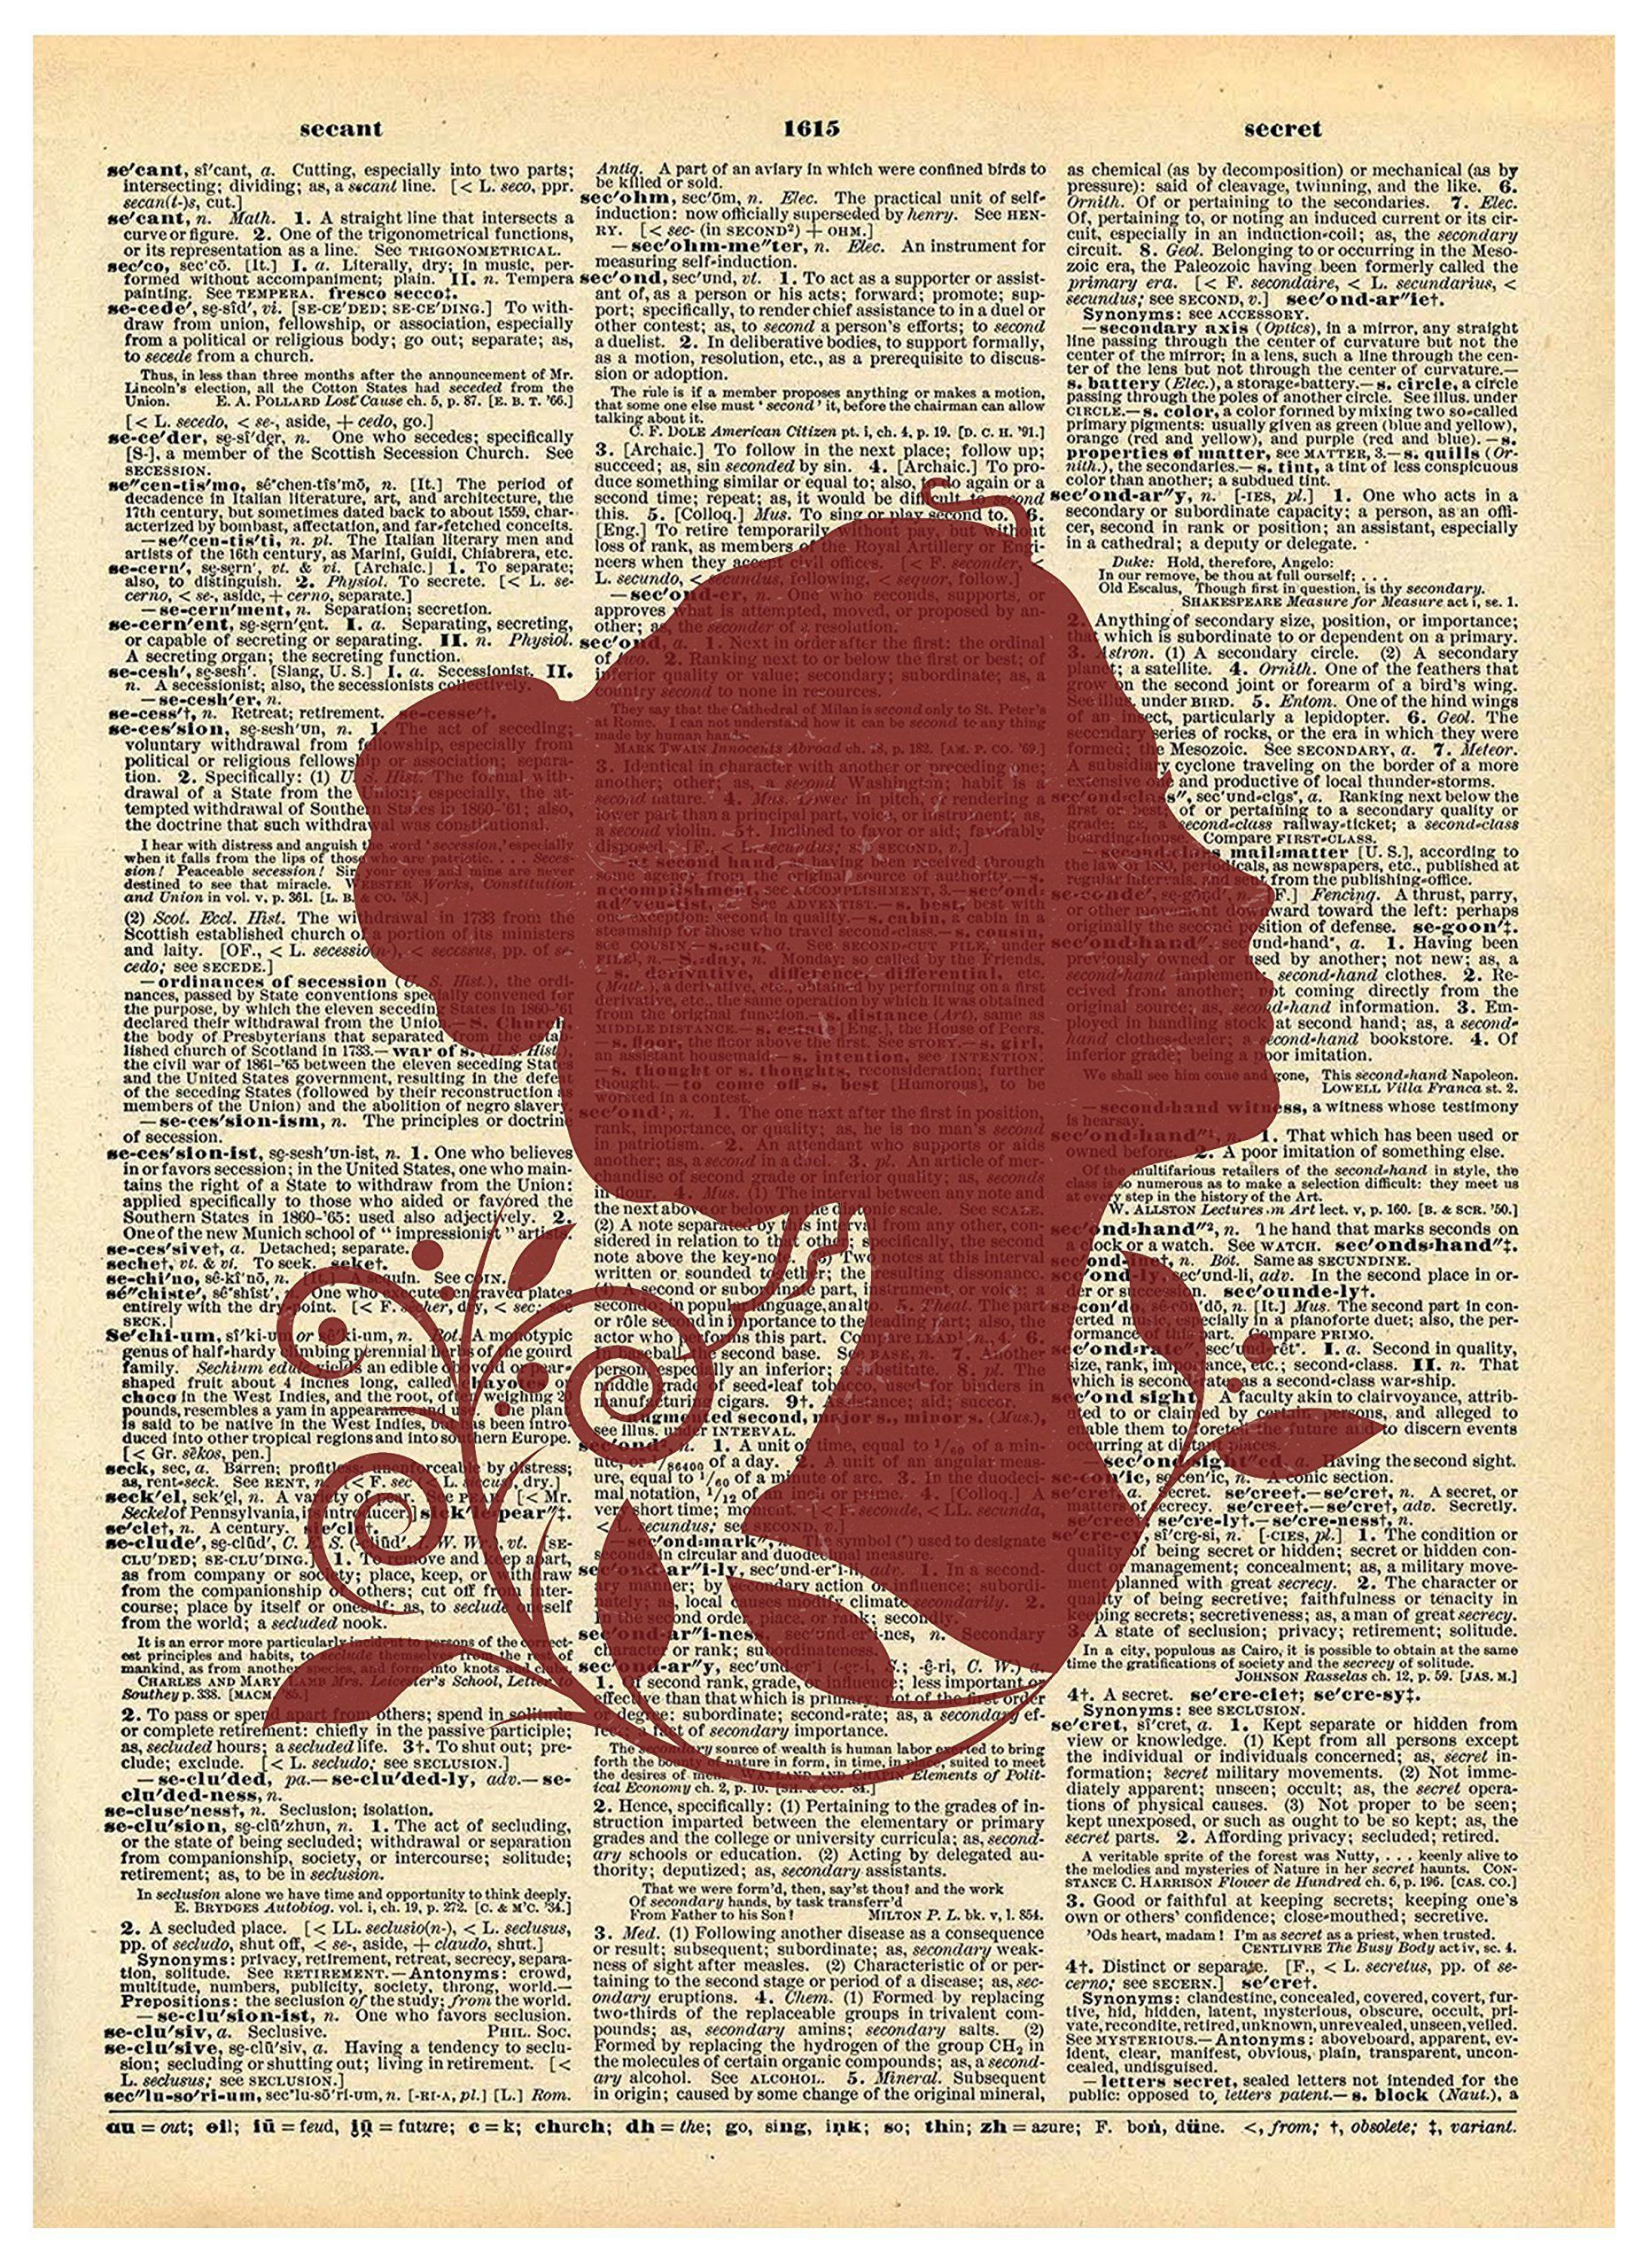 Female outline rose vines vintage dictionary print x inch home